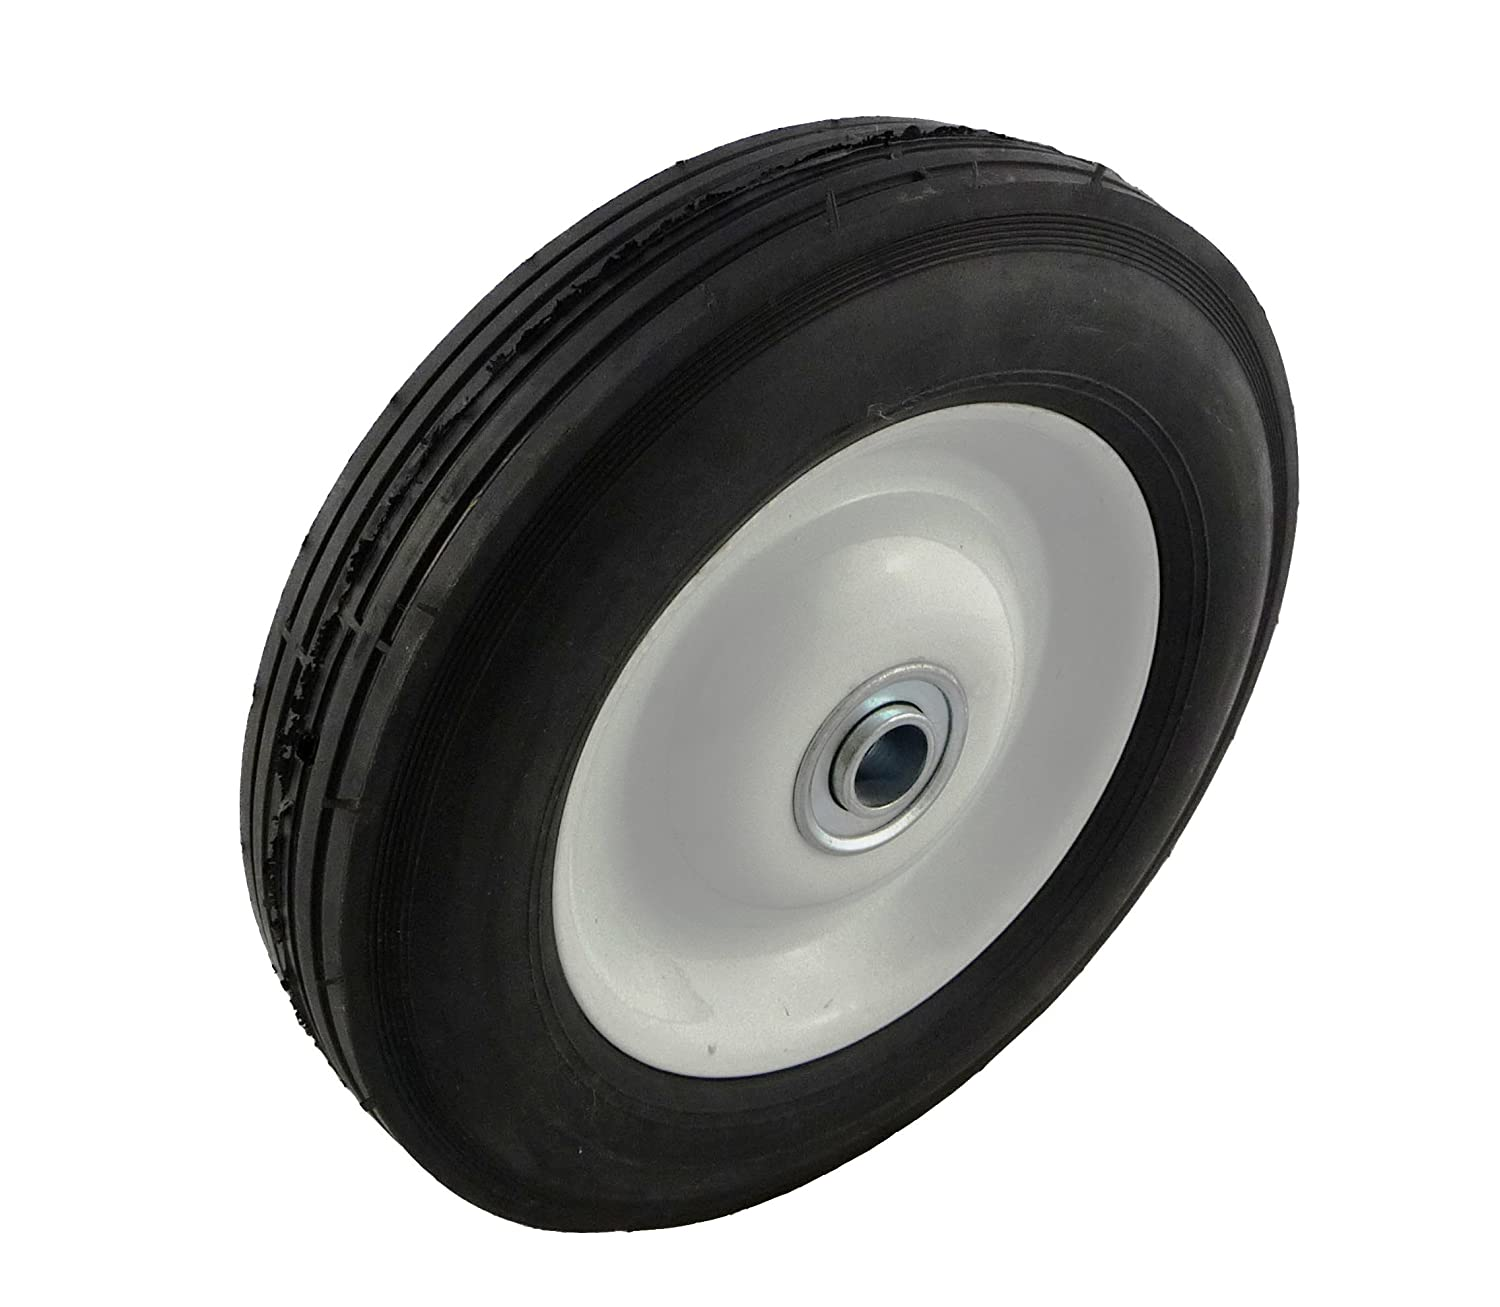 "Marathon 8x1.75"" Semi Pneumatic Tire on Wheel with Offset Hub"